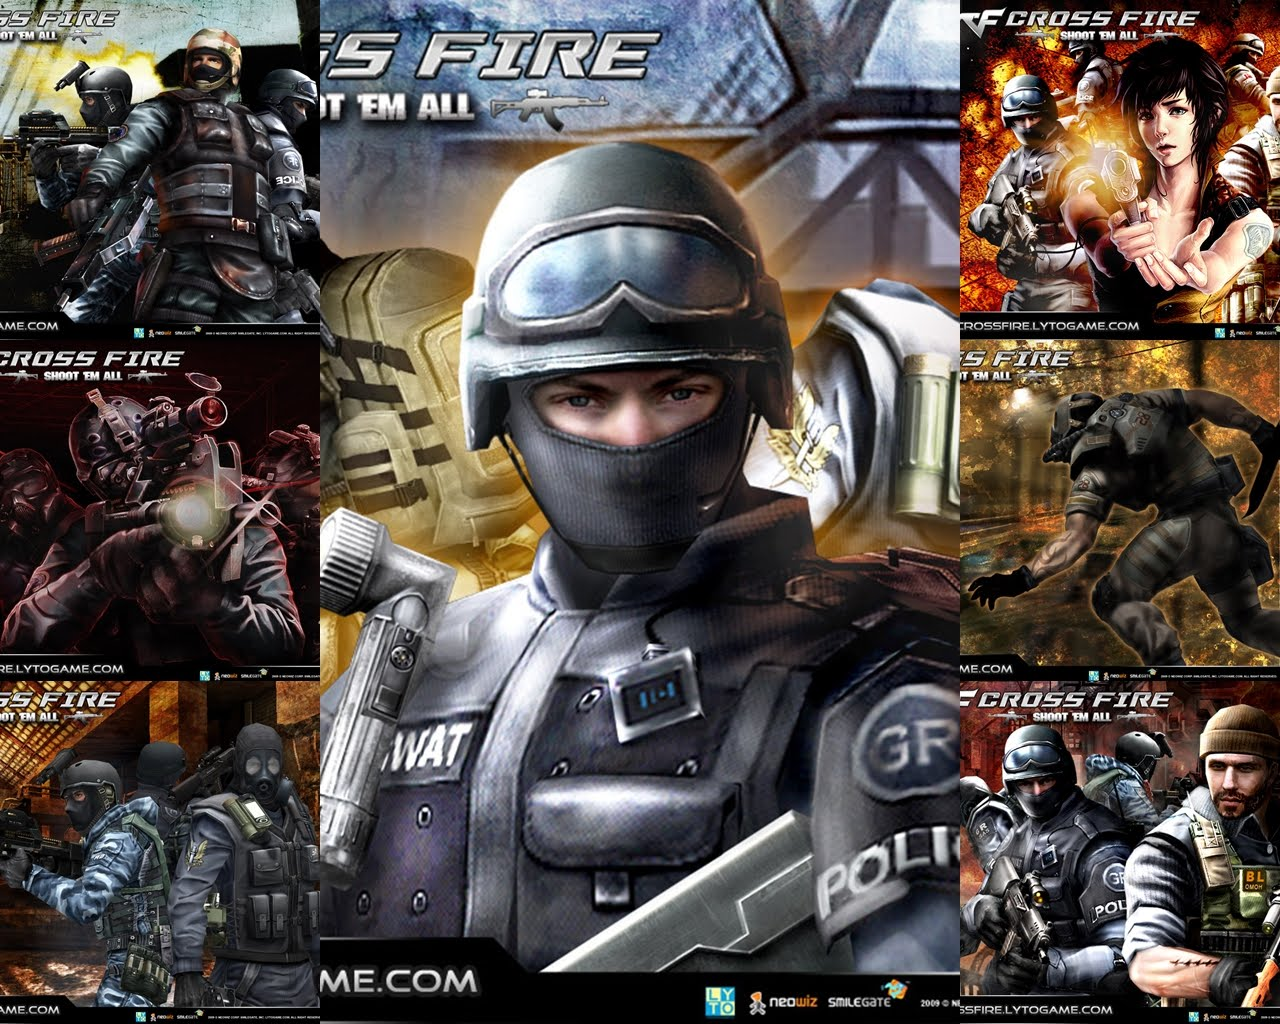 wallpaper crossfire collection 2011 - photo #1